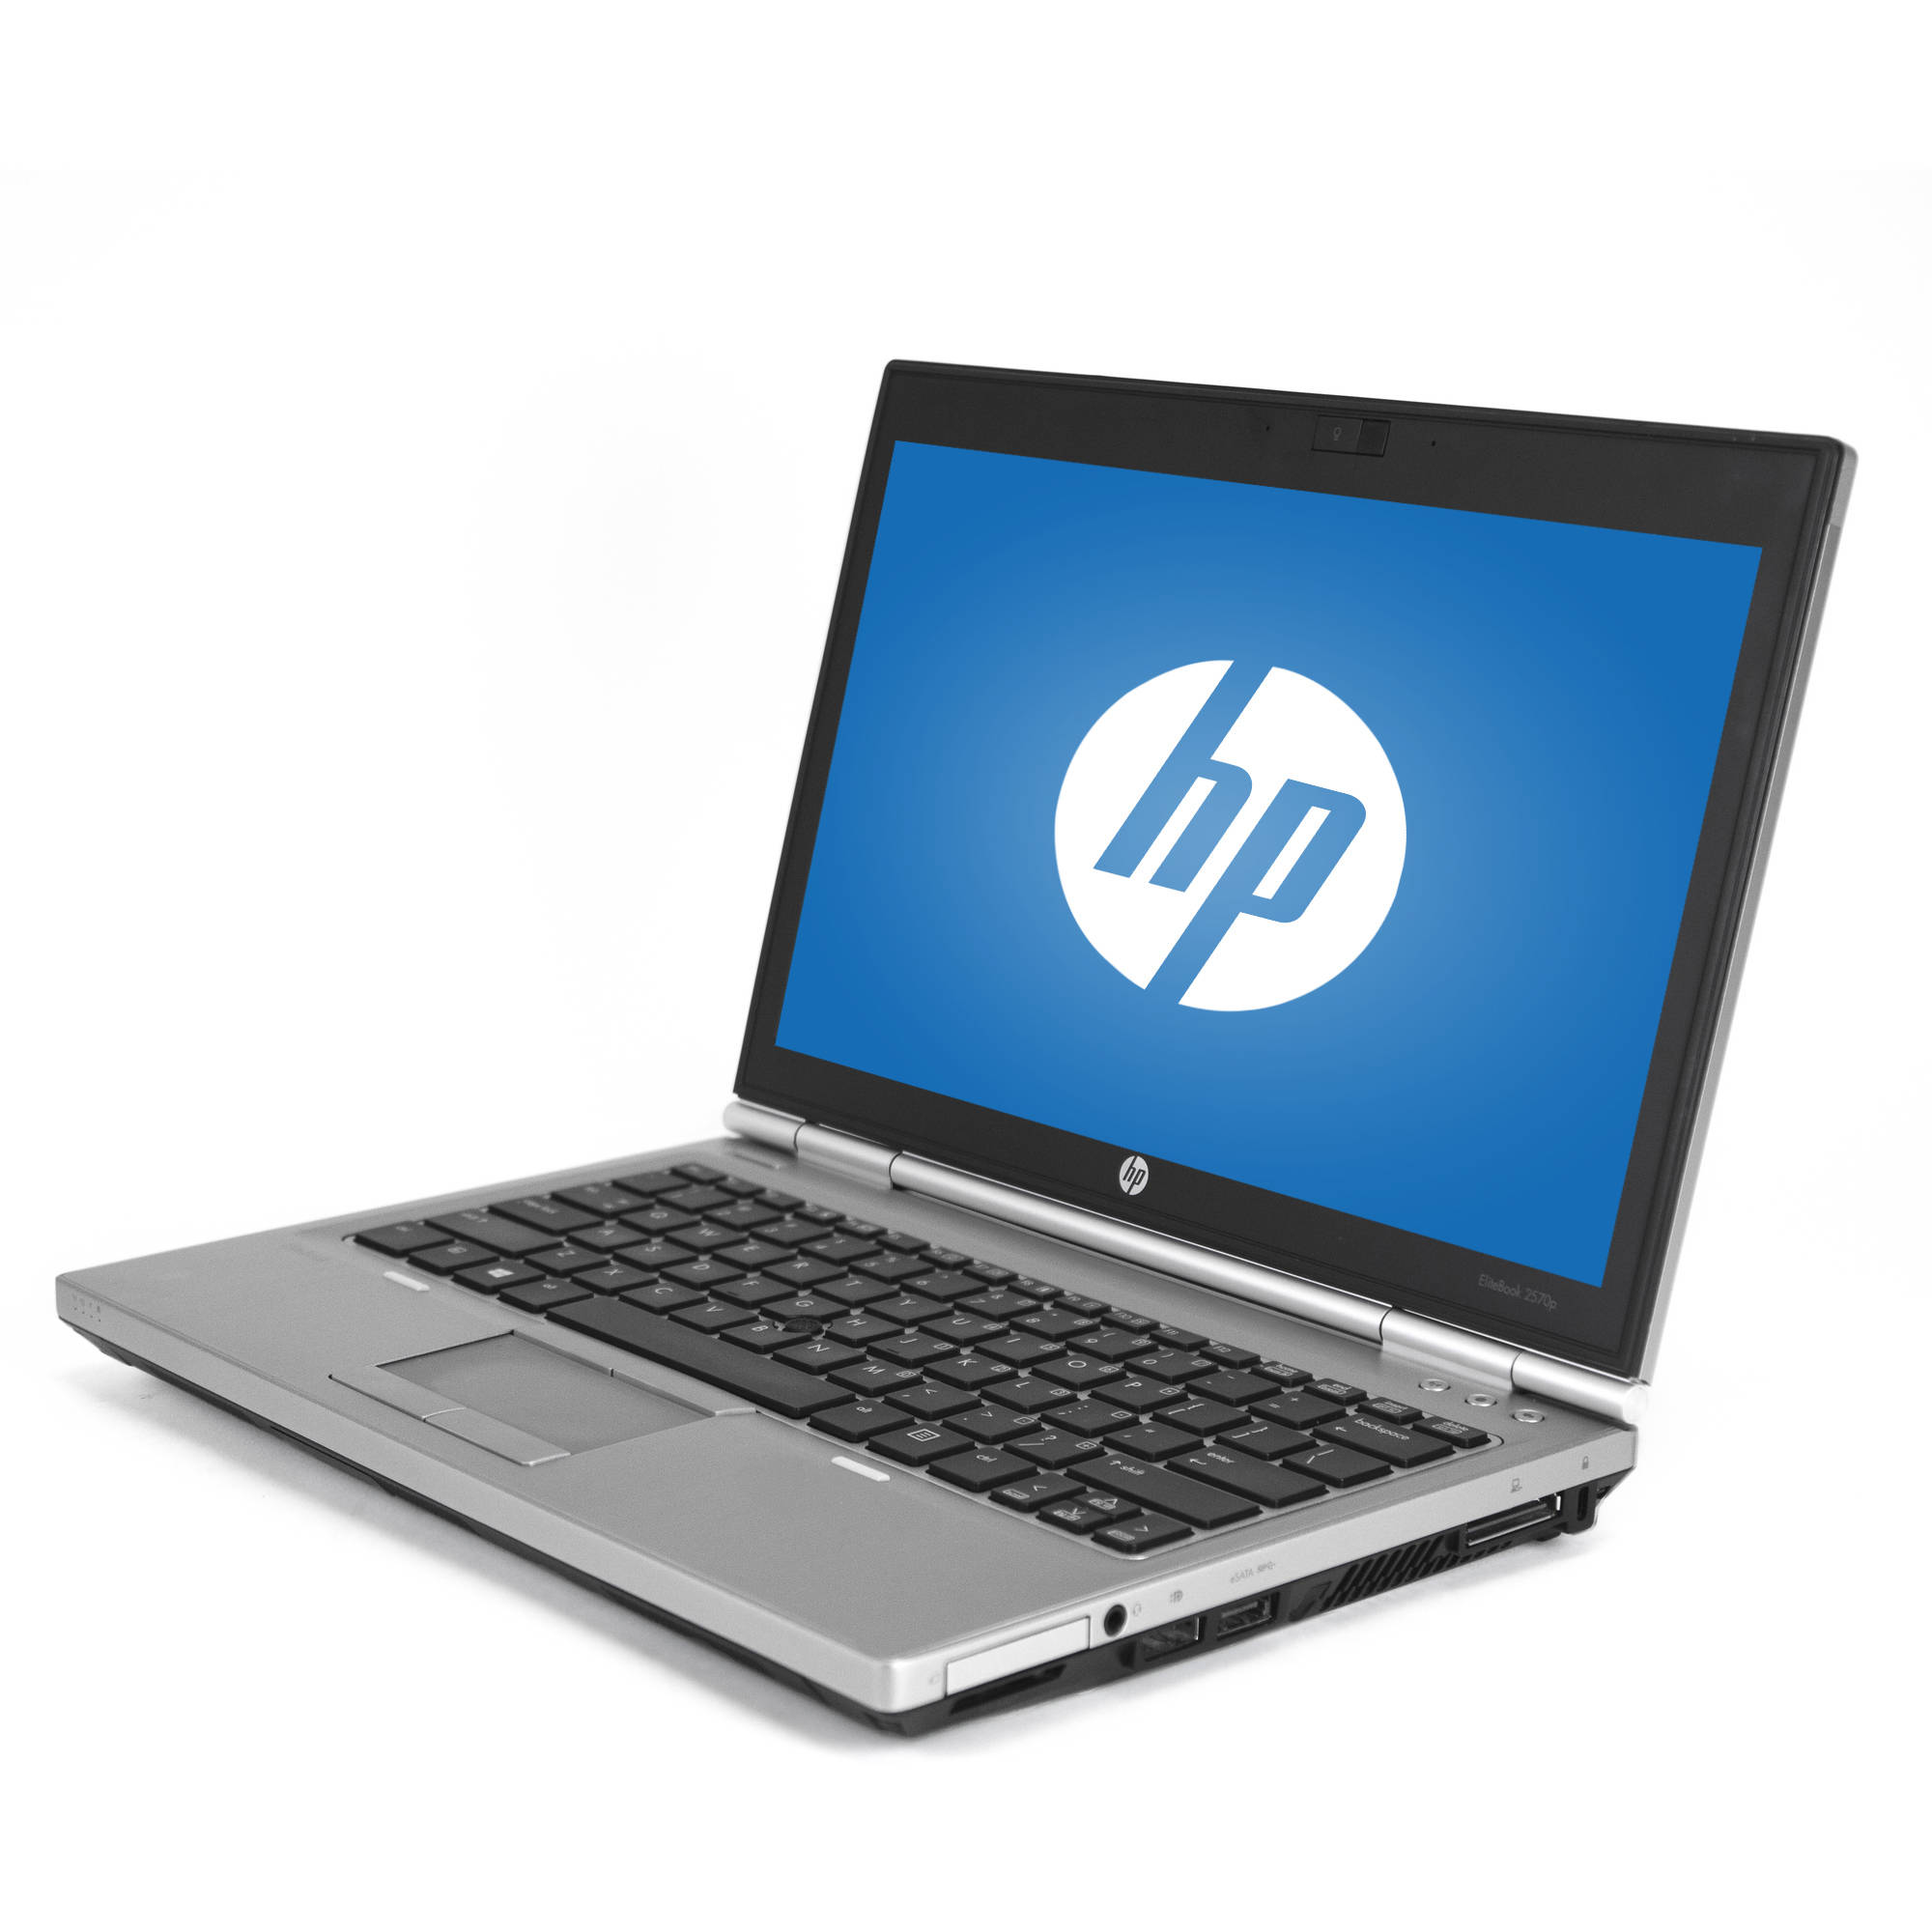 "Refurbished HP Silver 12.5"" Elitebook 2570P Laptop PC with Intel Core i5-3320M Processor, 16GB Memory, 750GB Hard Drive and Windows 7 Professional"